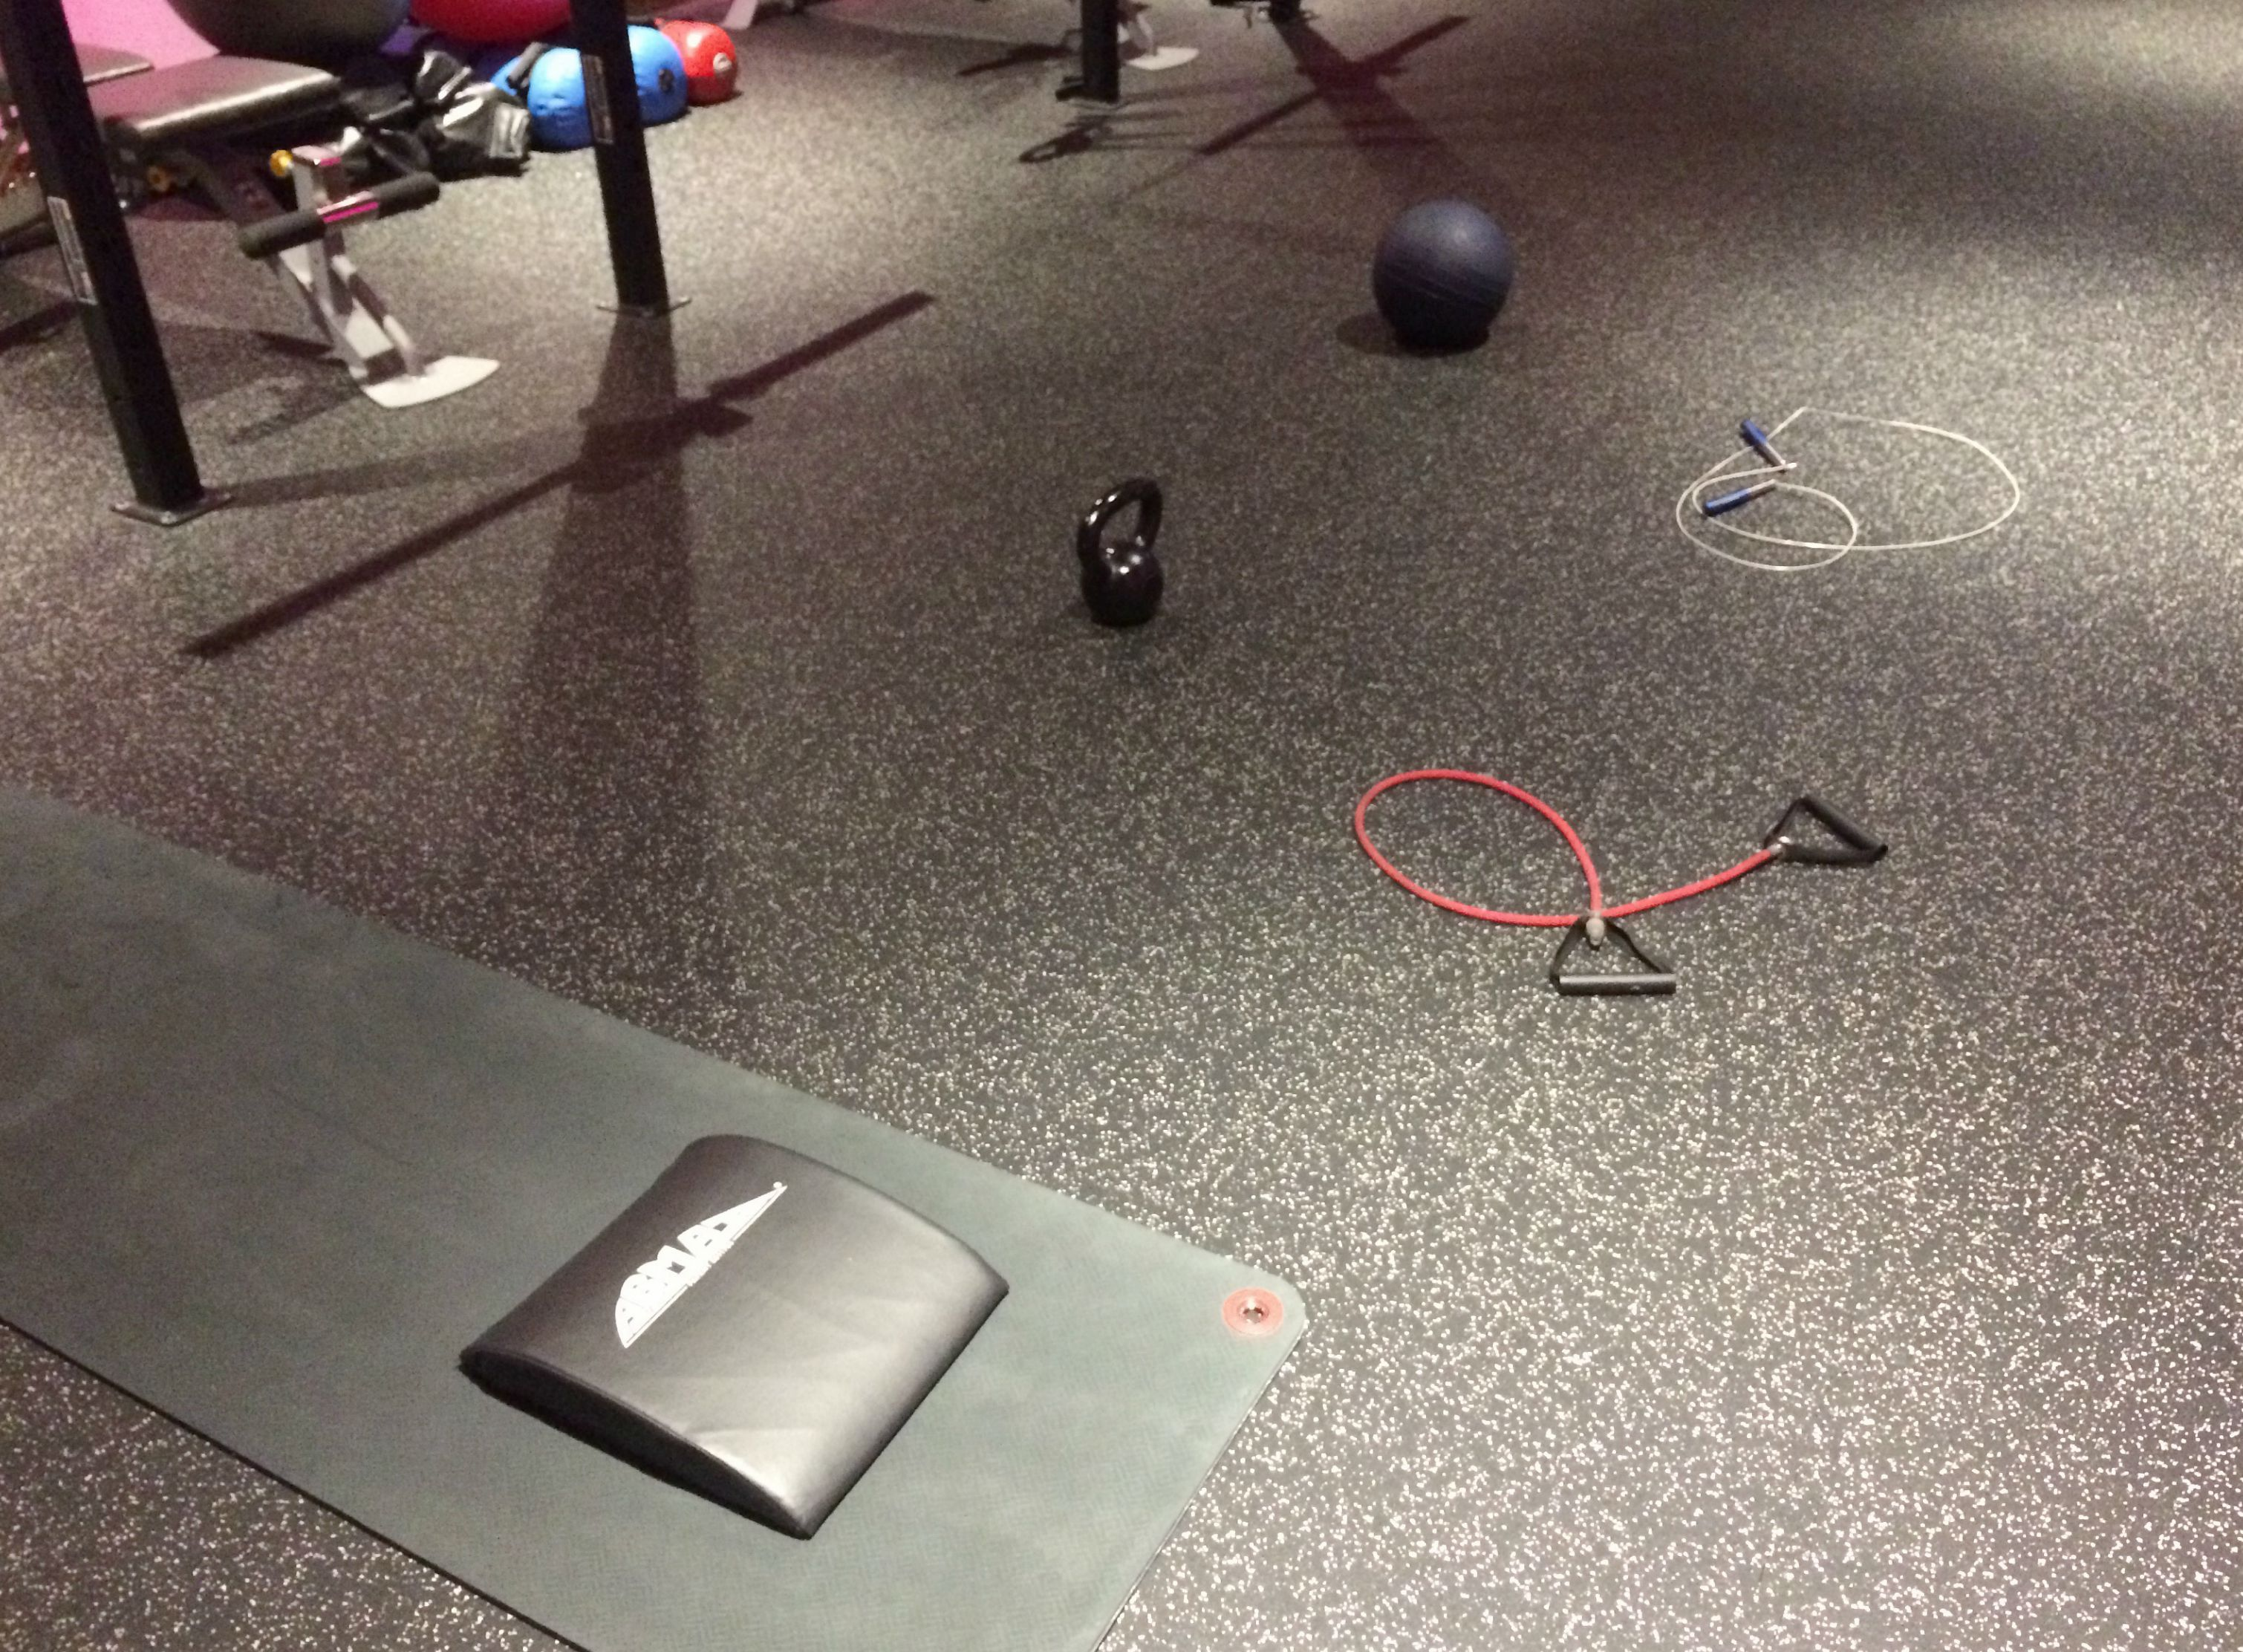 equipment for gym workout